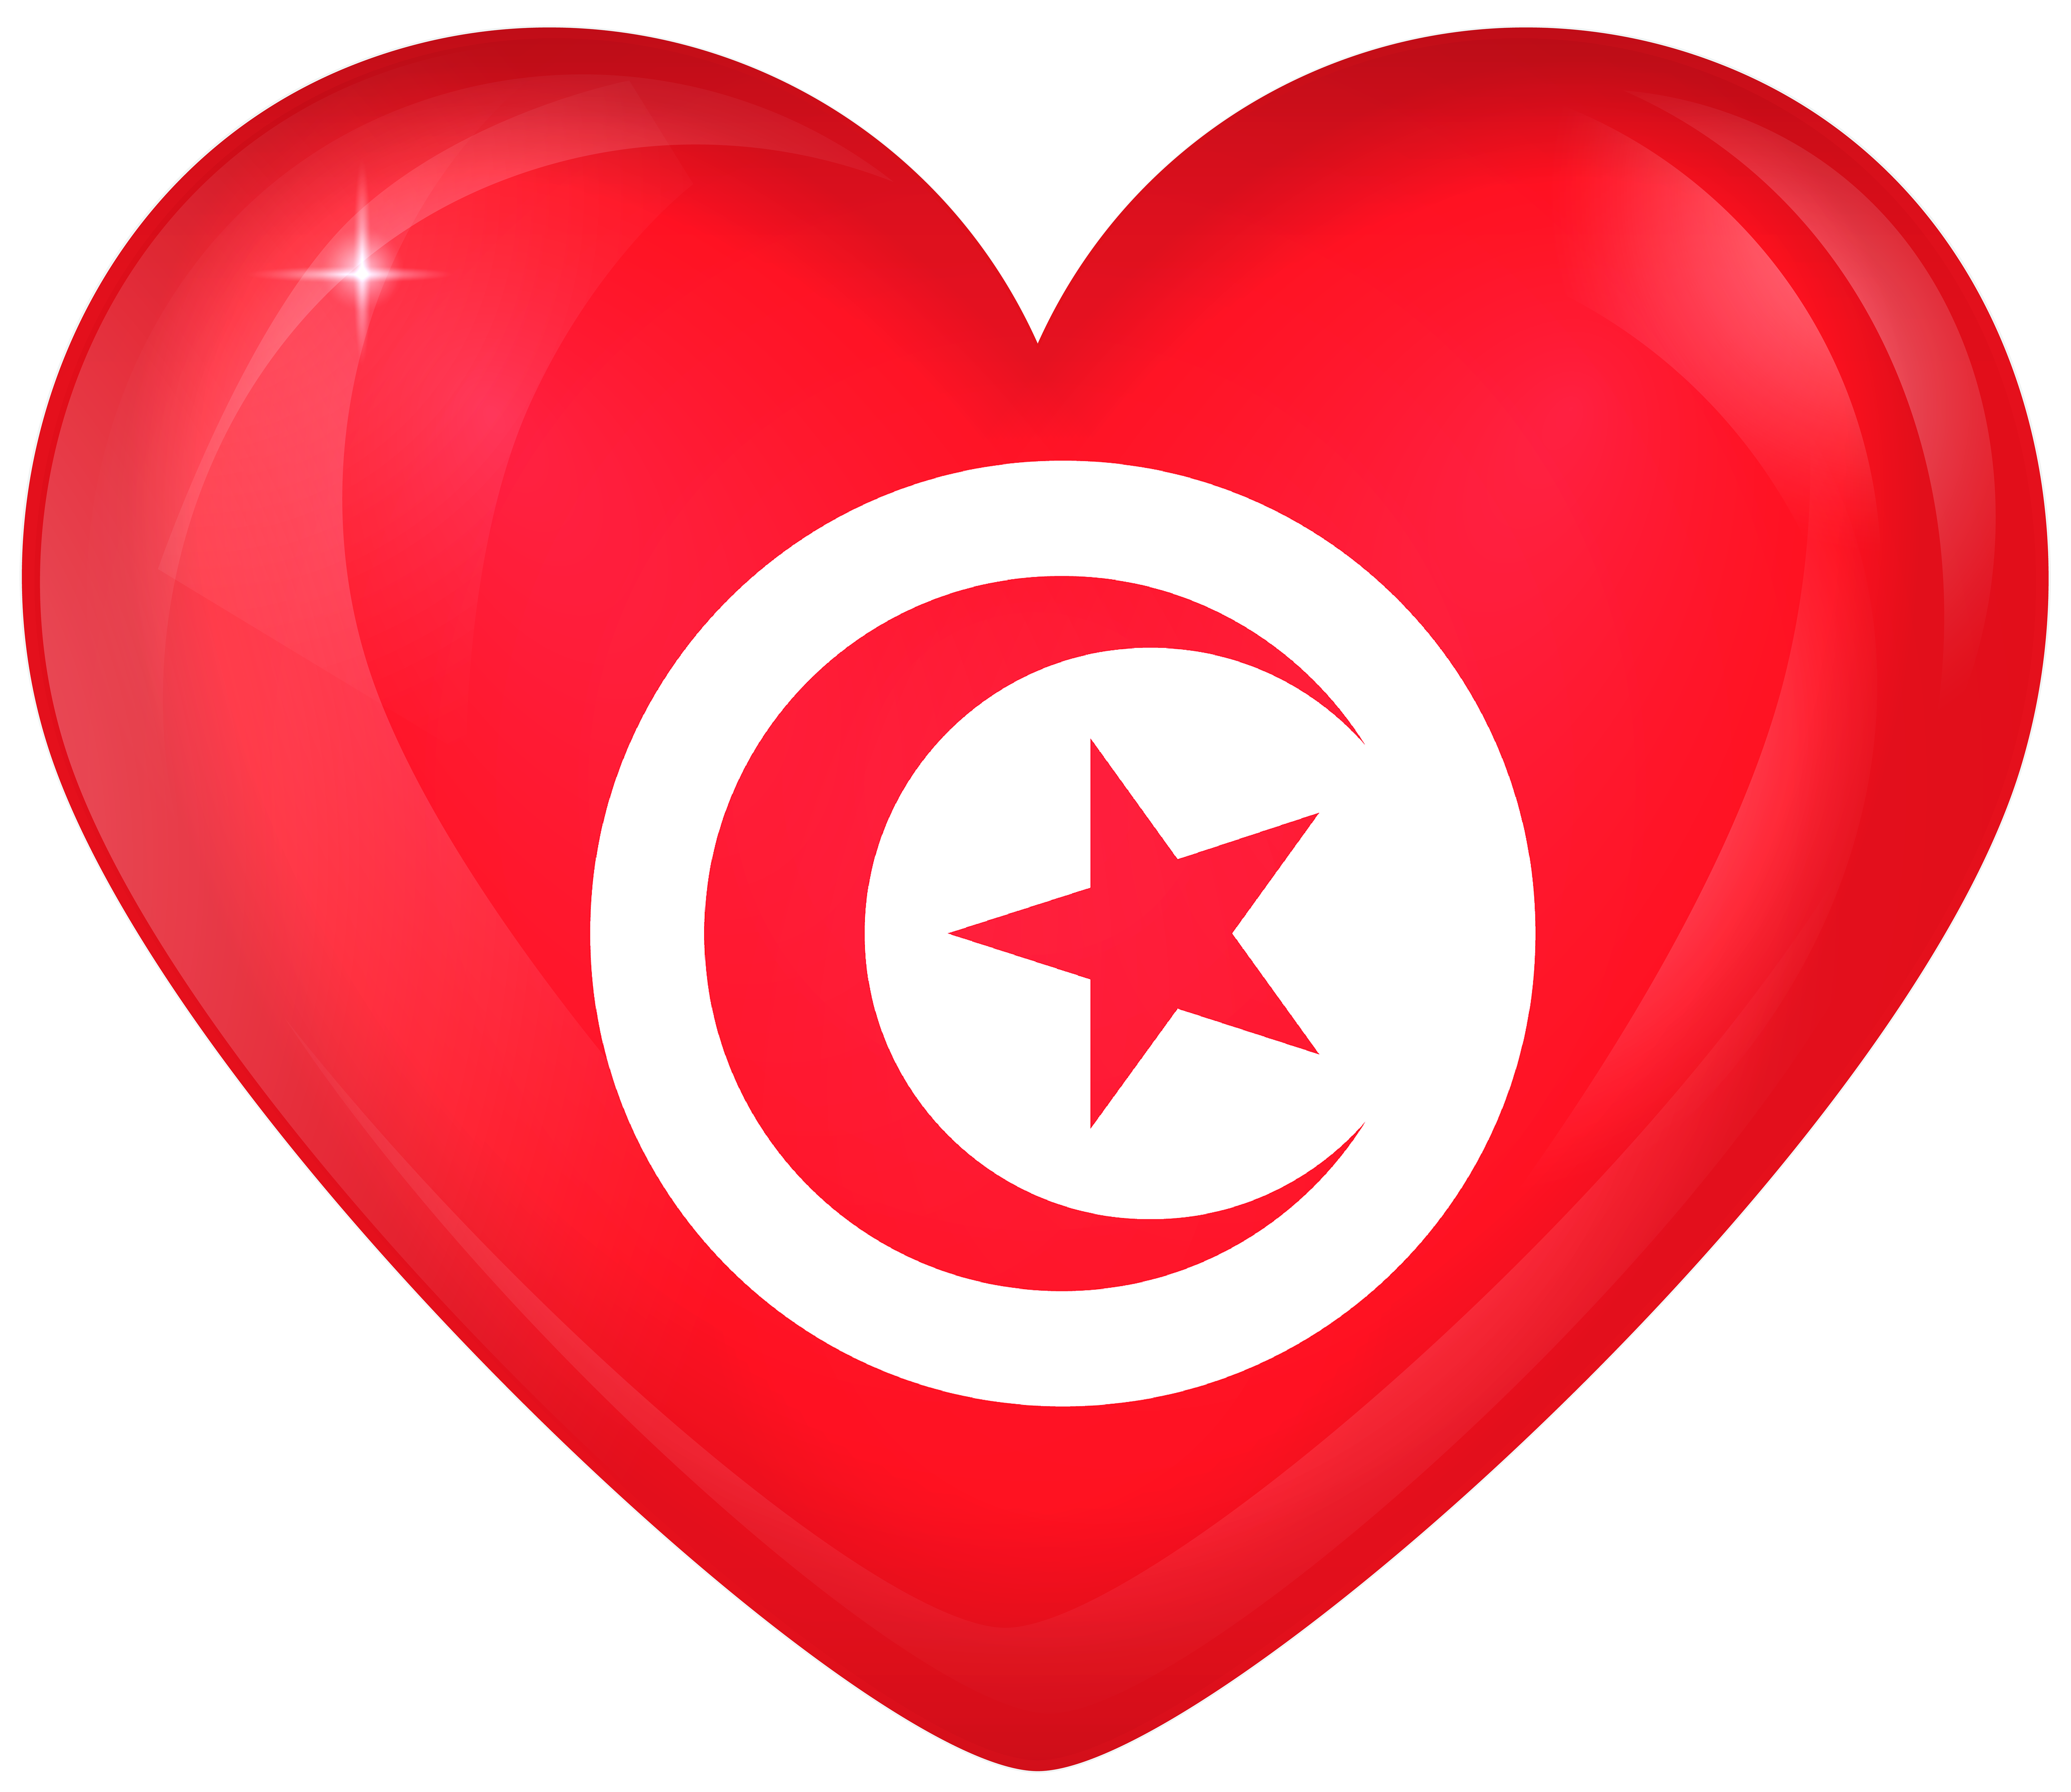 Tunisia flag png. Large heart gallery yopriceville